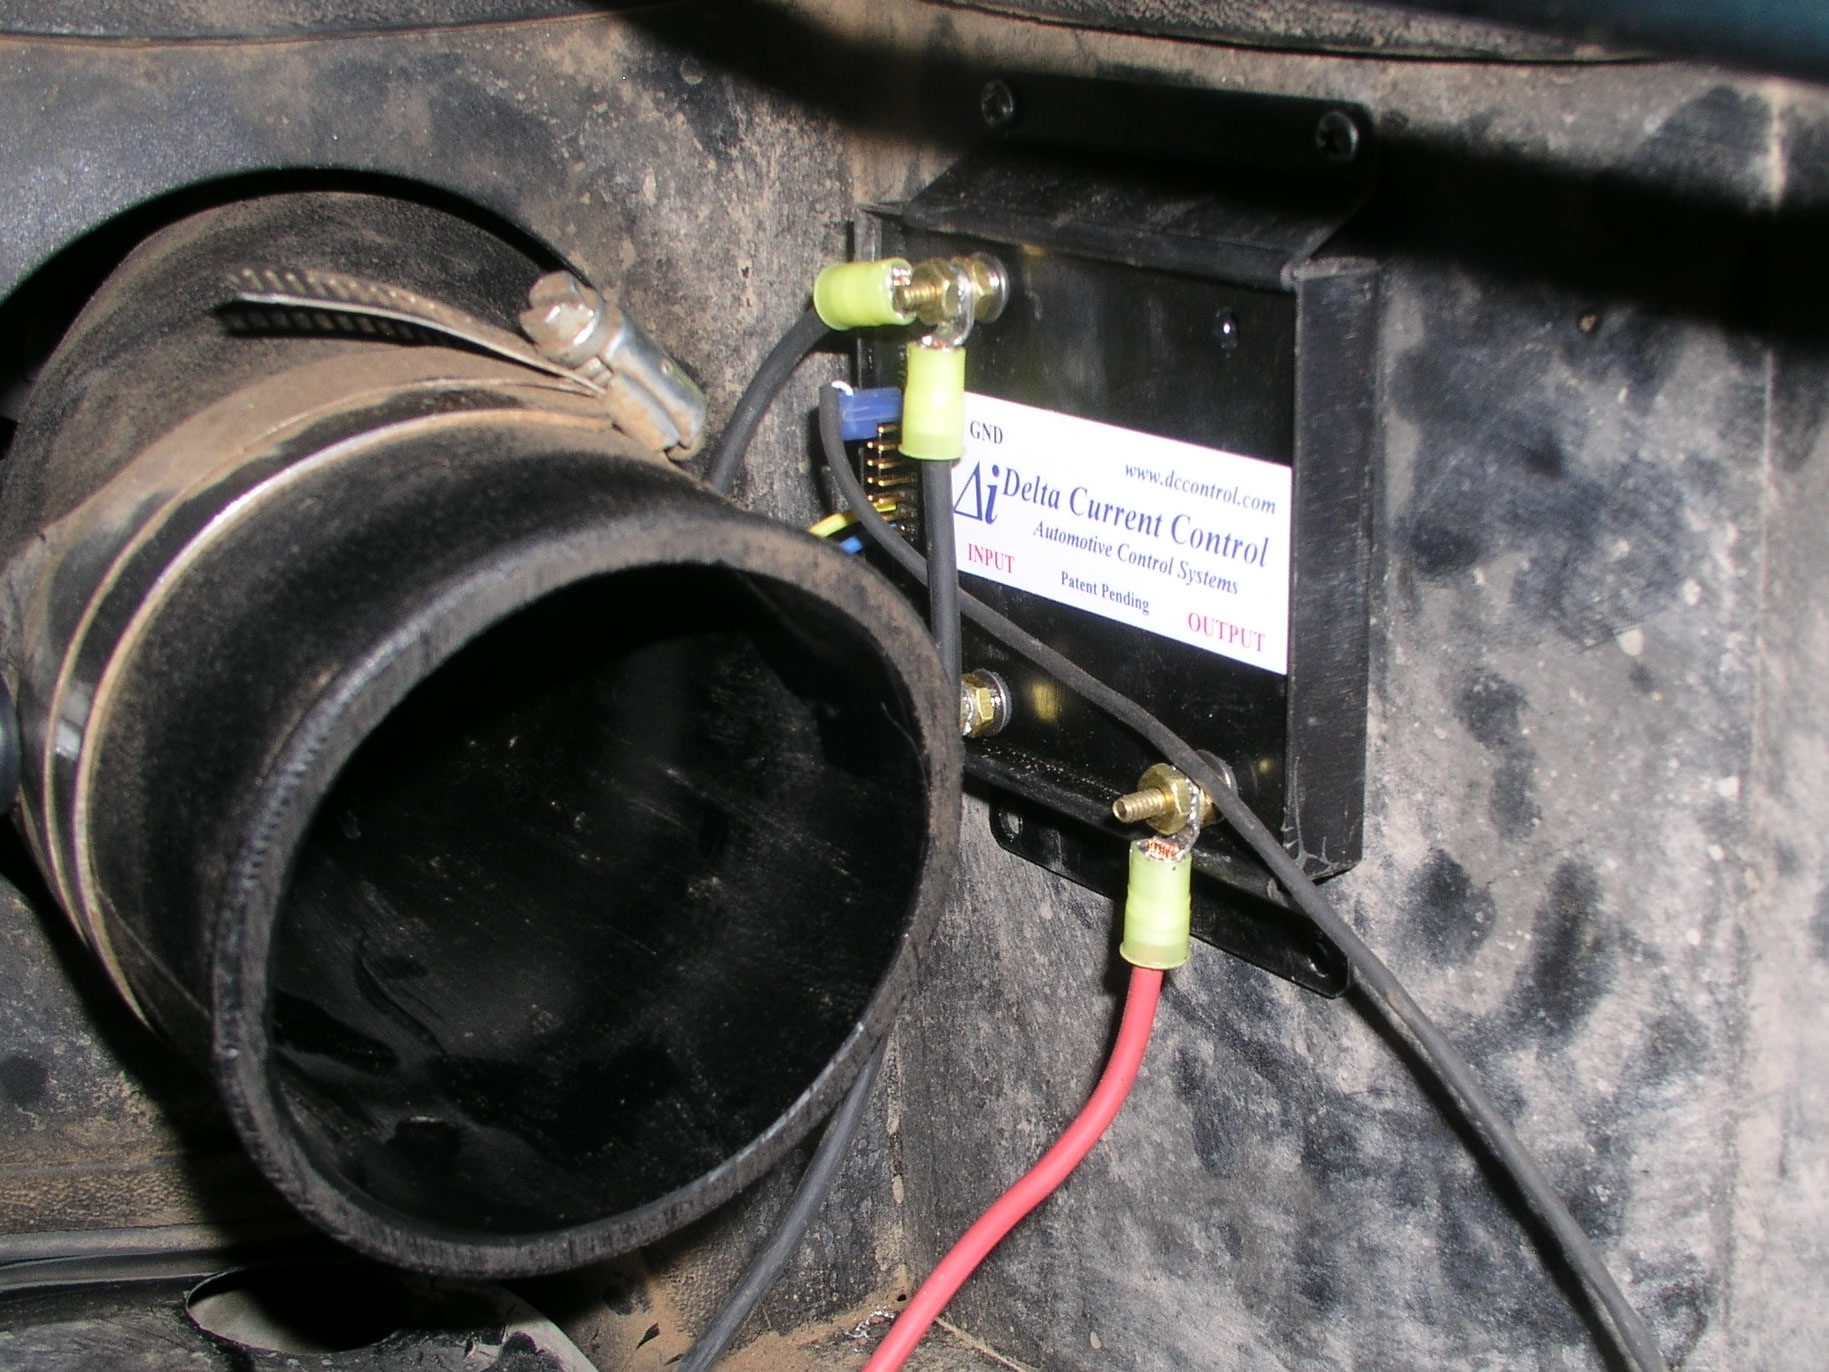 Electric Fan Install Jeep Wrangler Tj 02 Ac Control Wiring Diagram Trim The Wire To Your Desired Length And Attach Other End We Ran Positive Posts Pos On Batt Then Both Negs